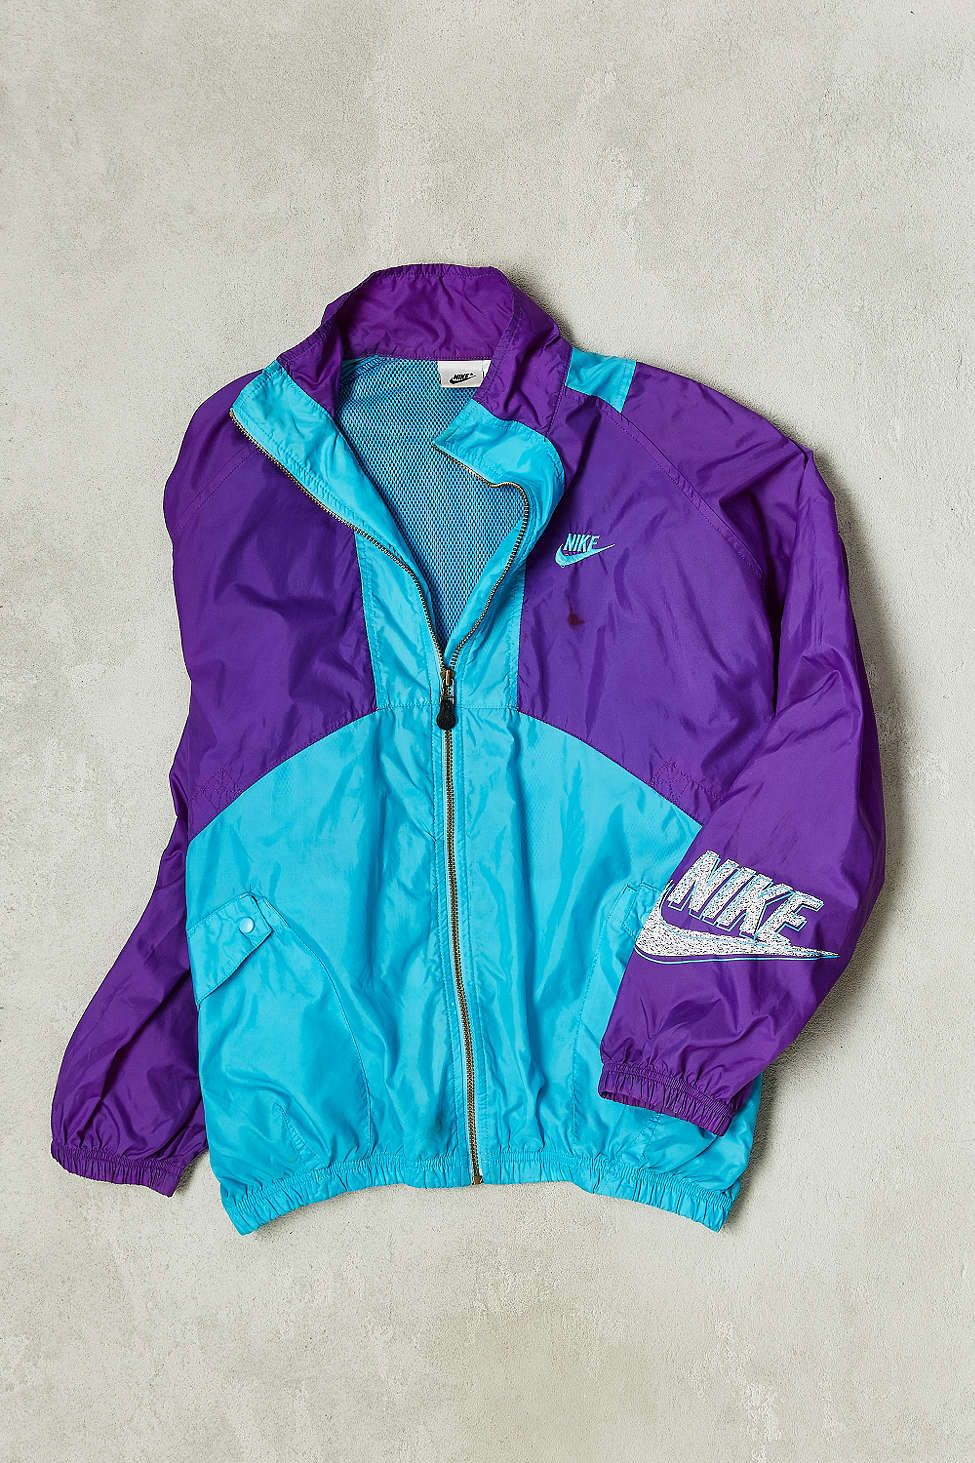 Vintage Nike Windbreaker Jacket  fda755b32